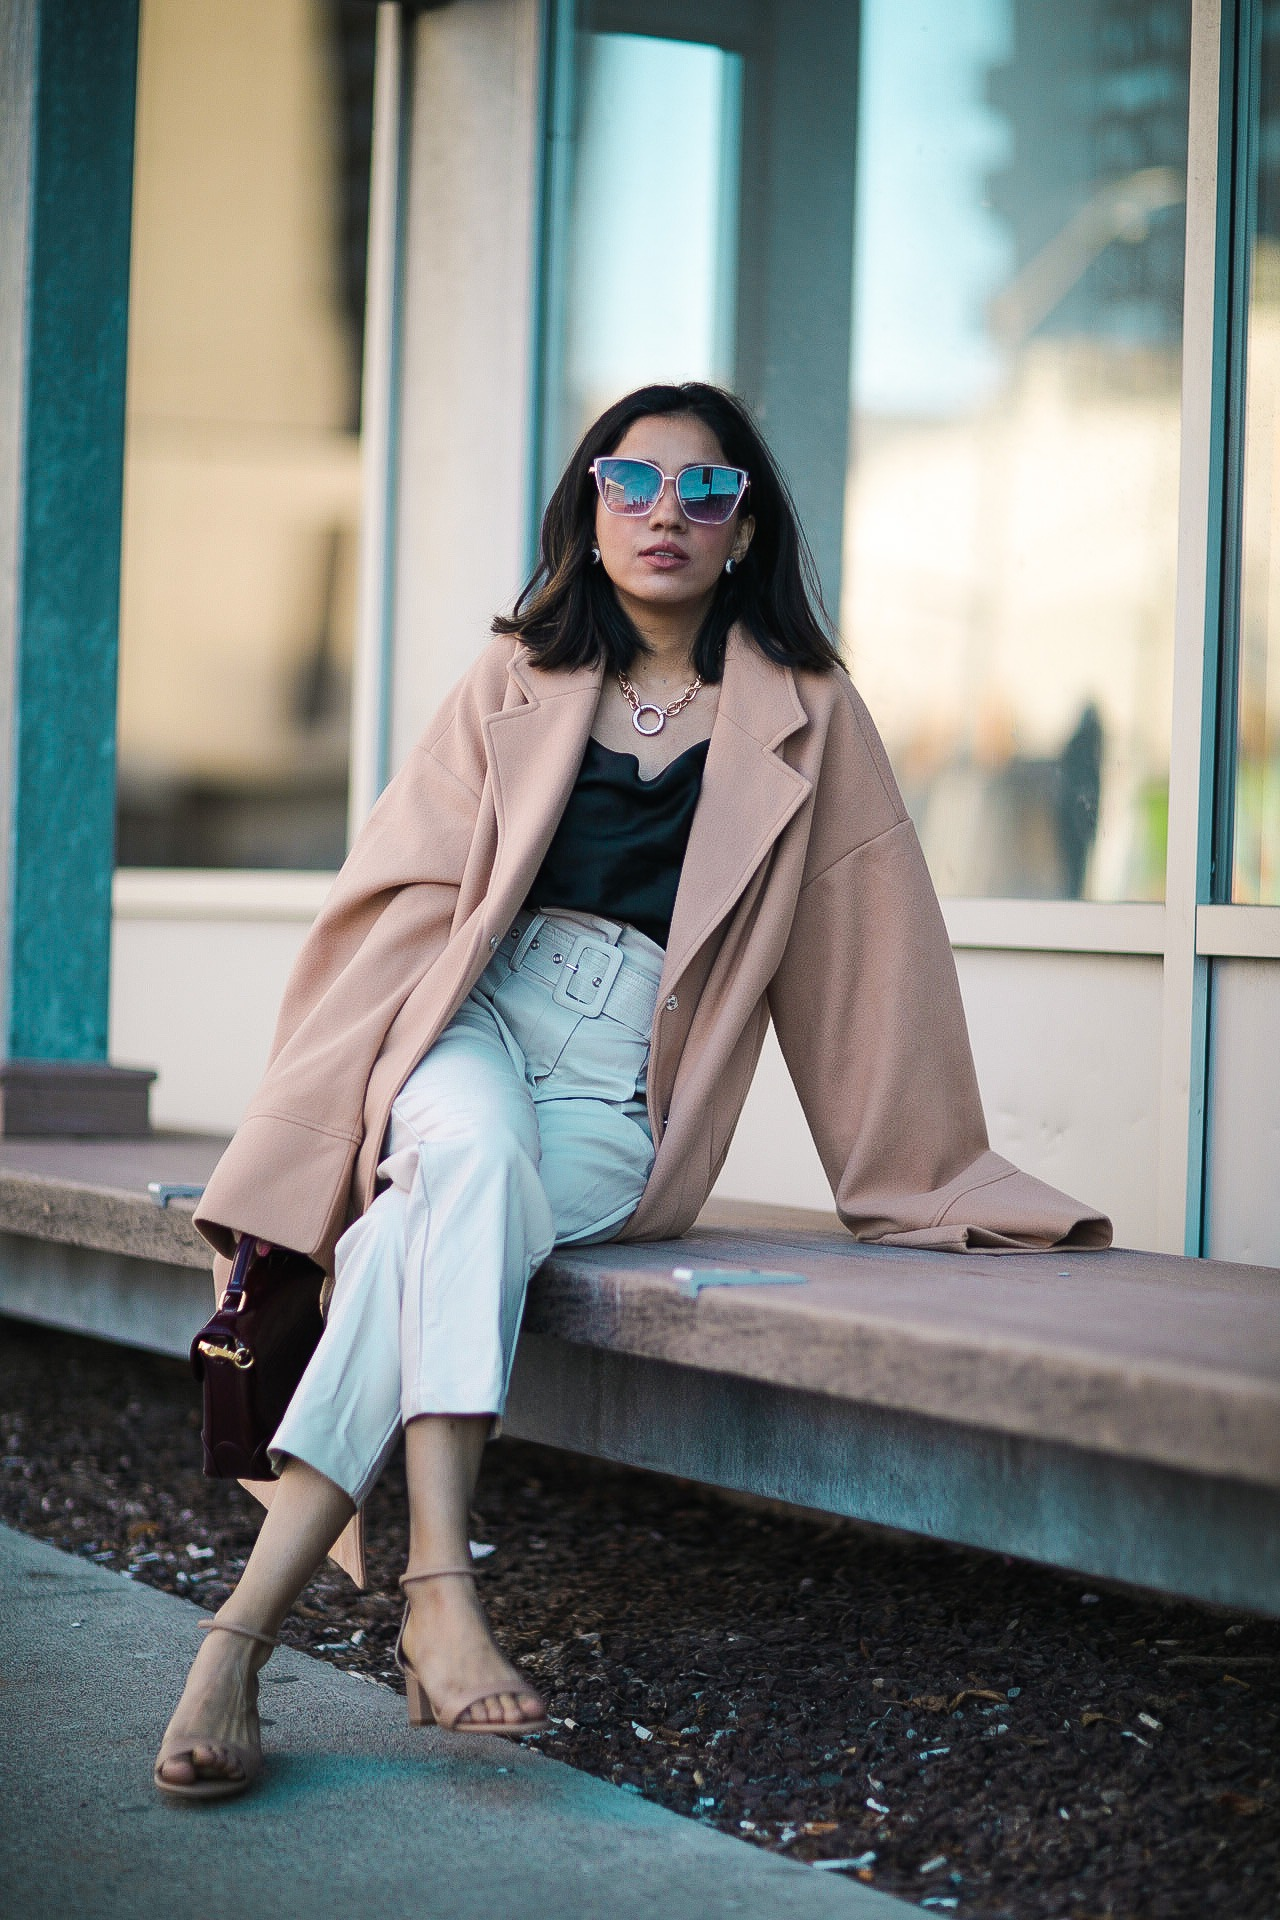 Basic to Fancy Amazon Prime Day Deals dresses shopbop on sale sincerelyhumble faiza inam 2